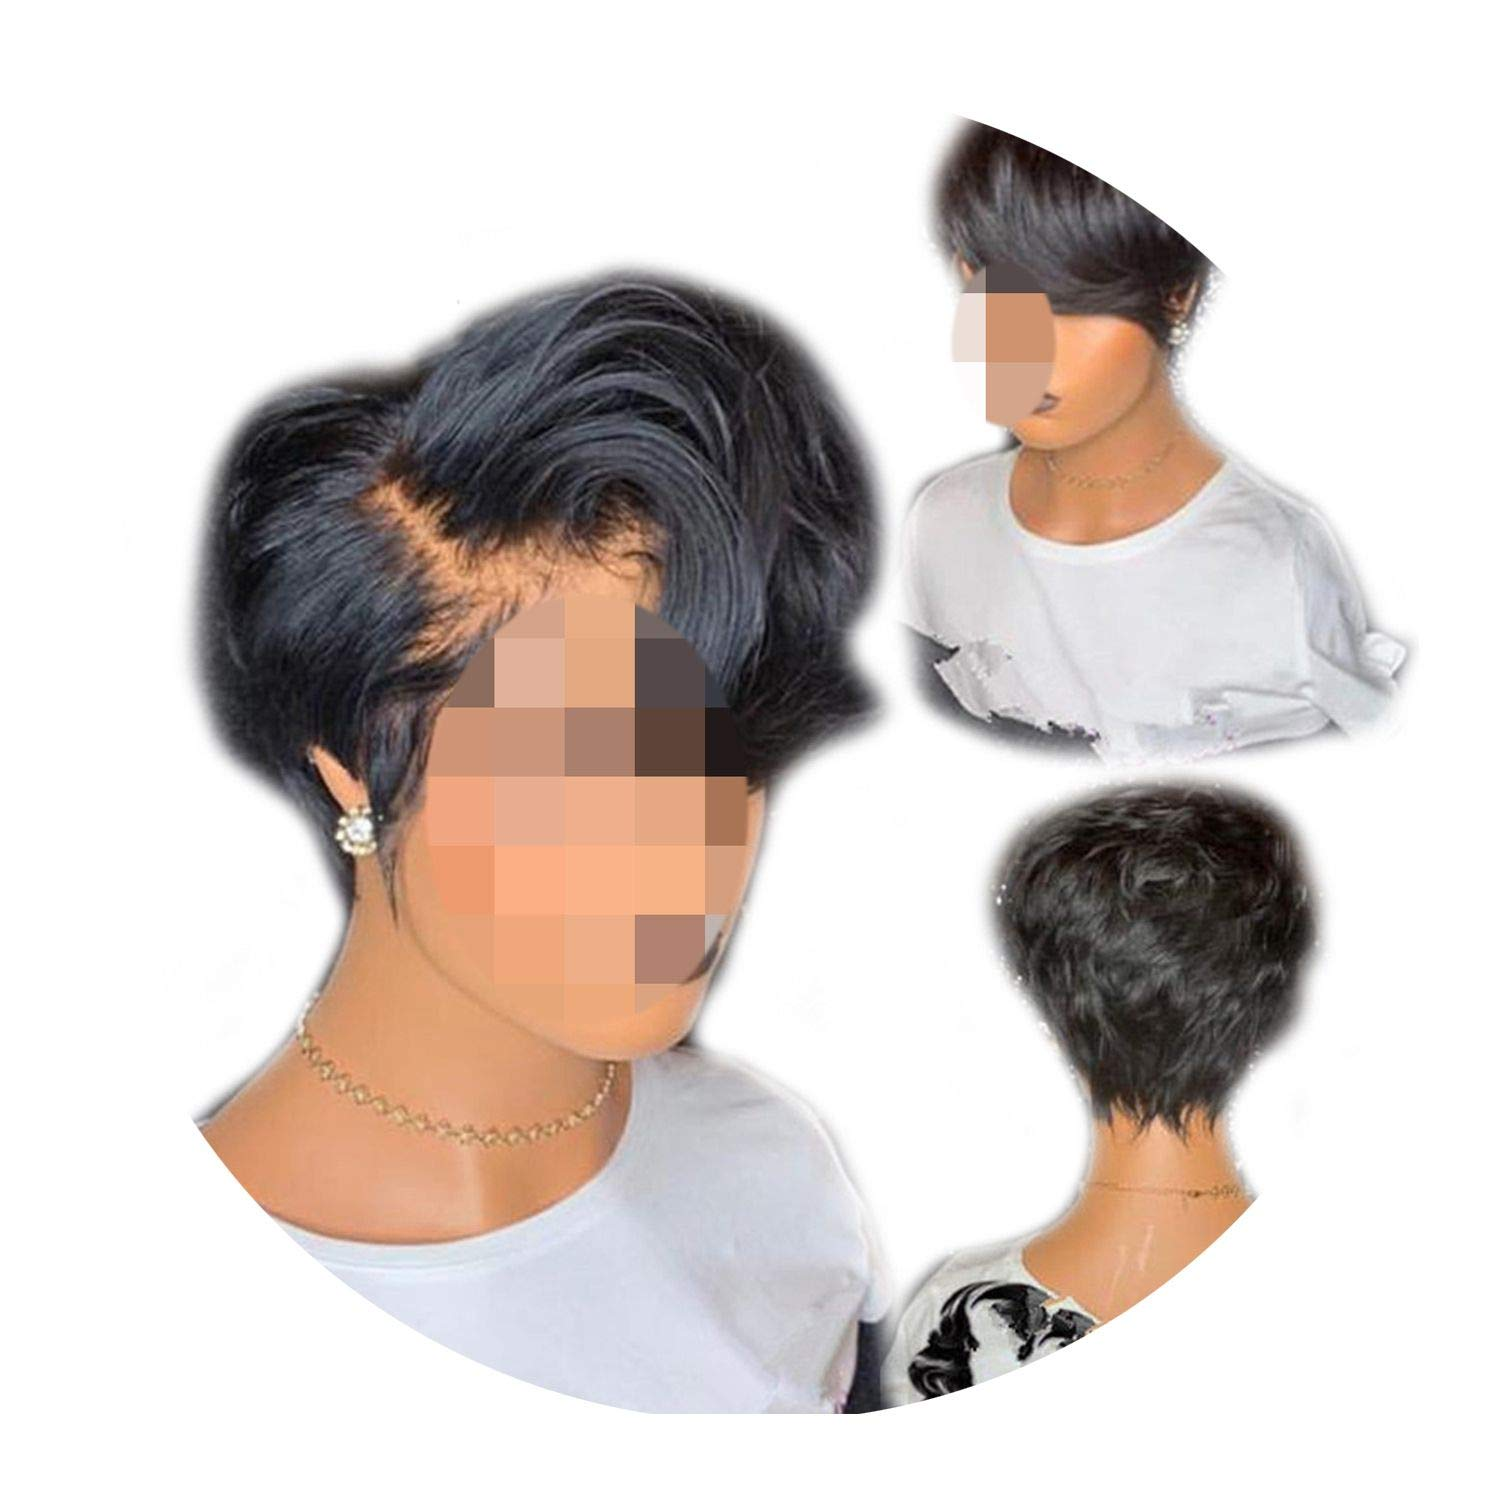 130% Short Lace Front Wigs Wavy Remy Hair Wigs Glueless Lace Front Human Hair Wigs Pre Plucked,Natural Color,6inches